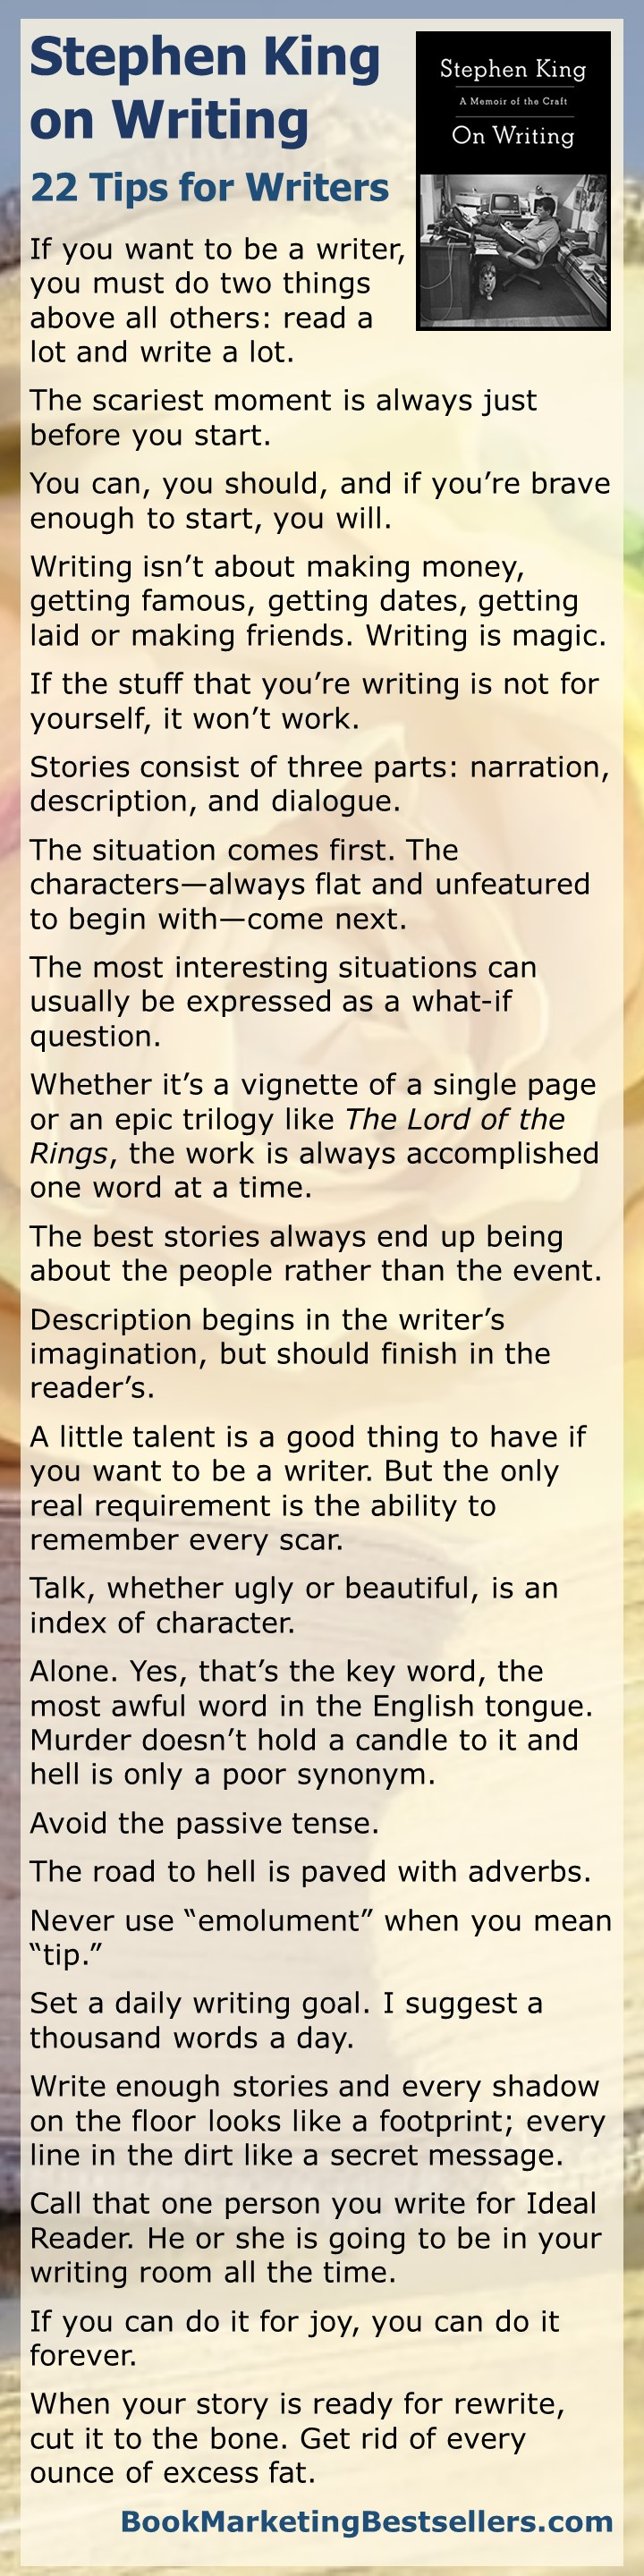 Stephen King on Writing: Here are just a few bits of advice on writing from Stephen King. Most of these 22 tips for writers are excerpted from Stephen's book On Writing. #writers #authors #writing